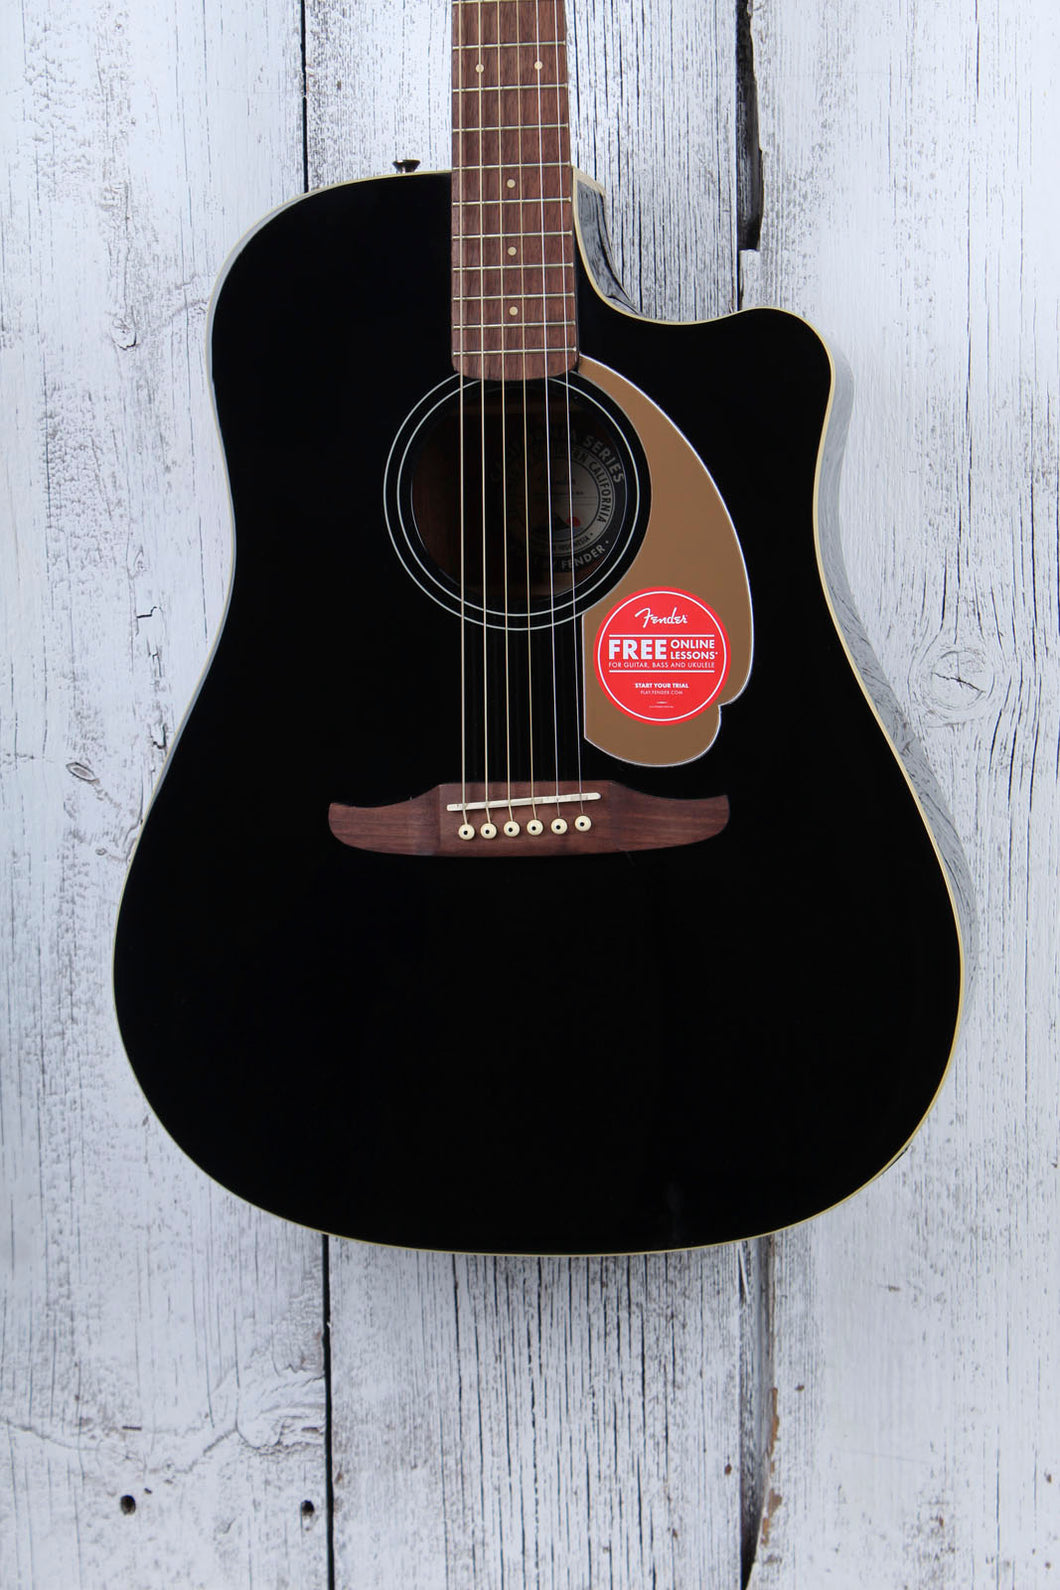 Fender® Redondo Player Acoustic Electric Guitar California Series Jetty Black